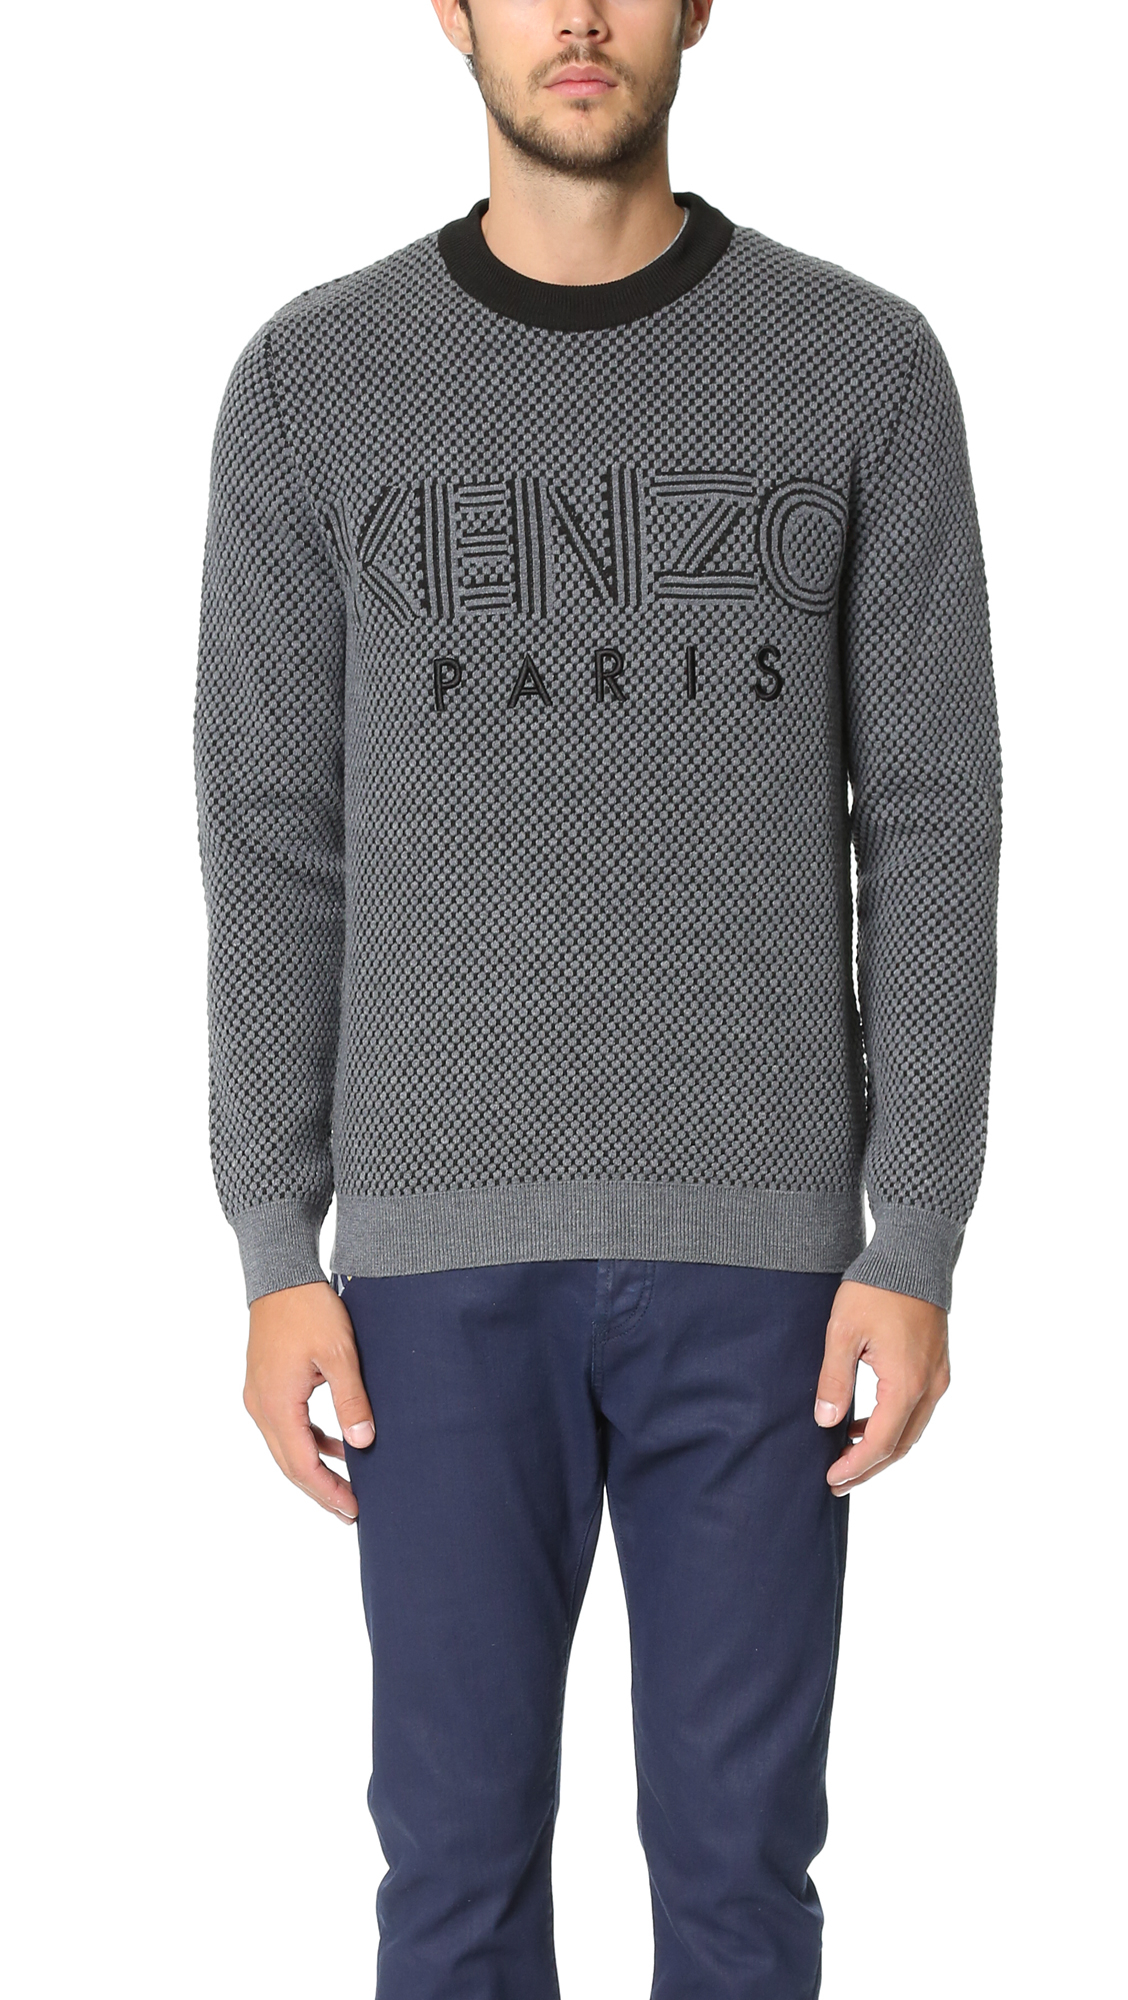 kenzo paris waffle knit sweater in gray for men lyst. Black Bedroom Furniture Sets. Home Design Ideas